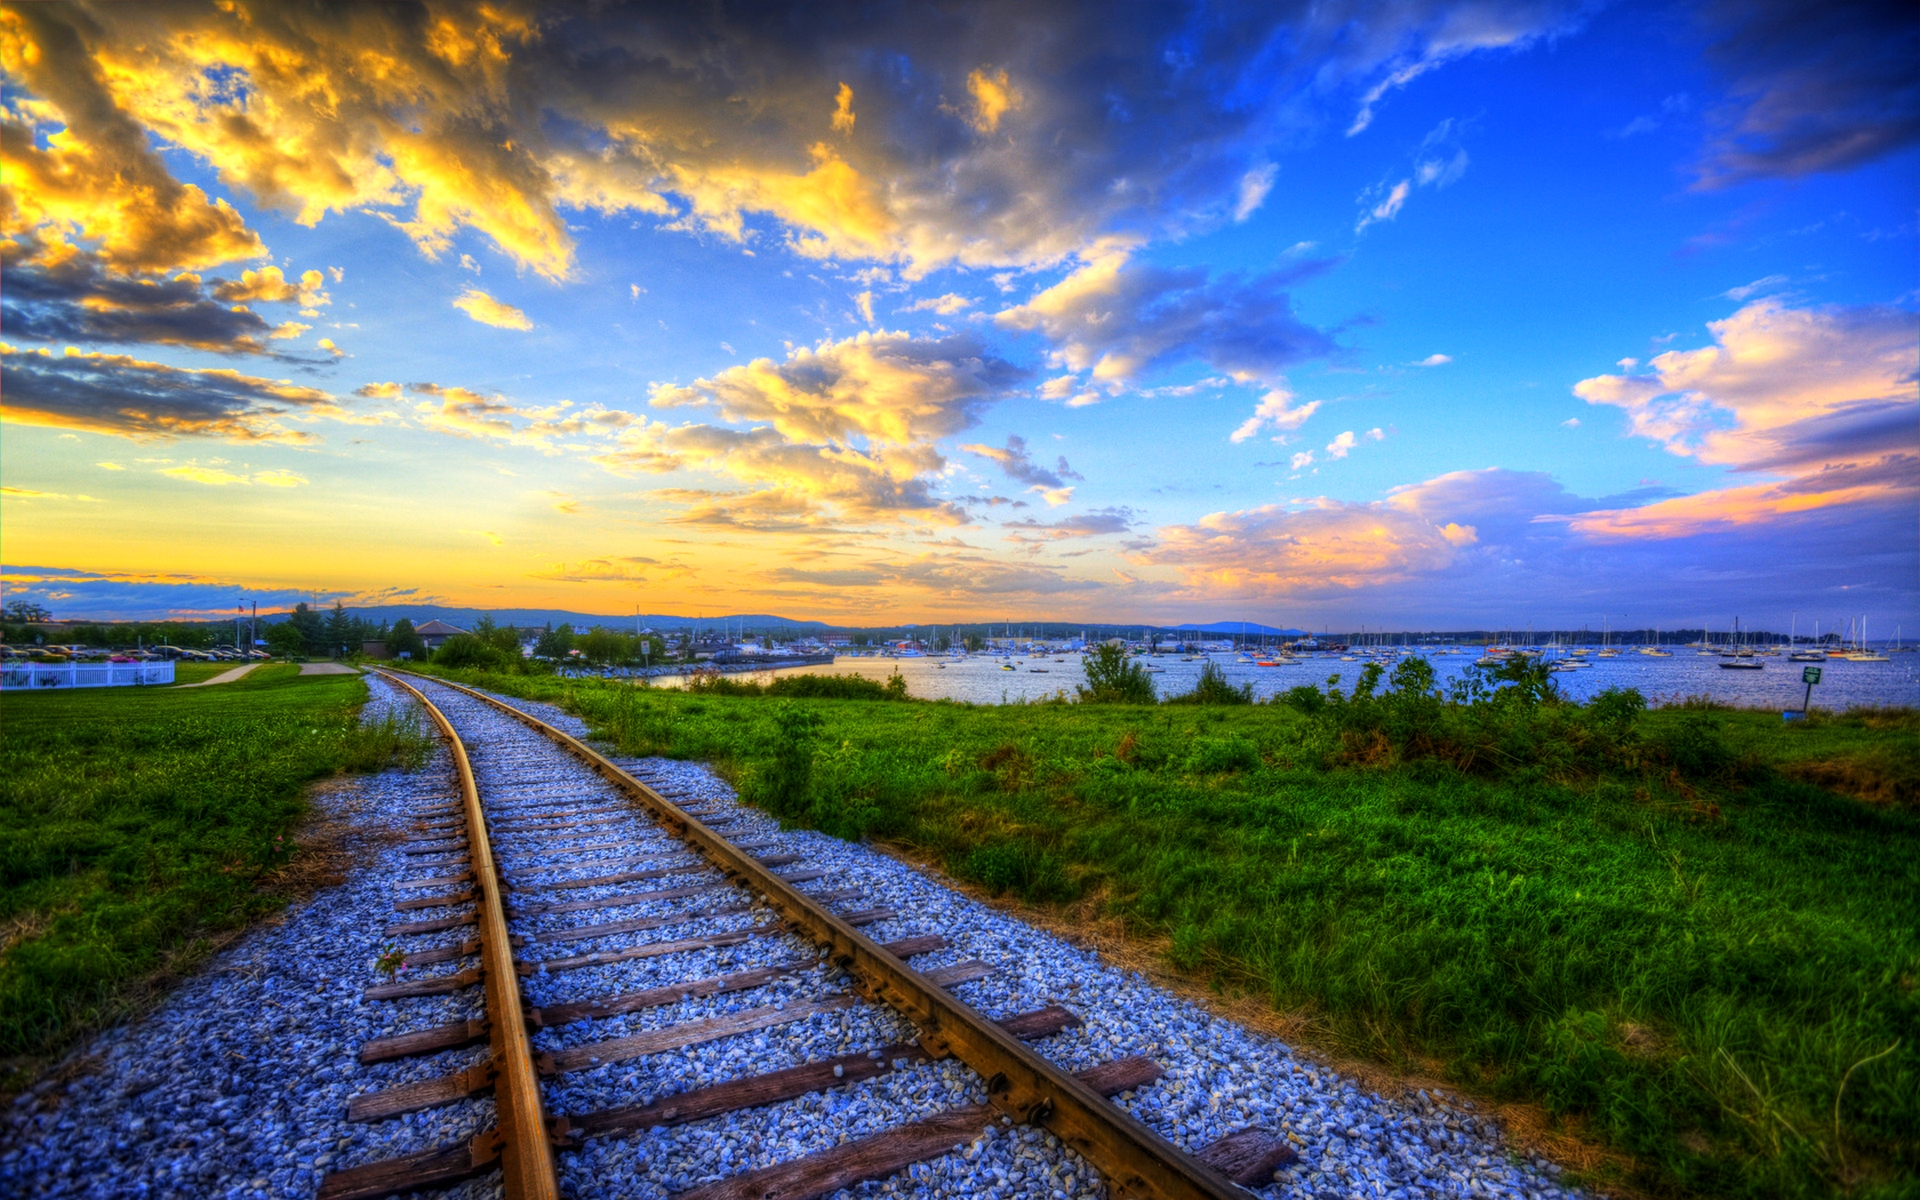 wallpaper details file name train track wallpaper hd uploaded by 1920x1200